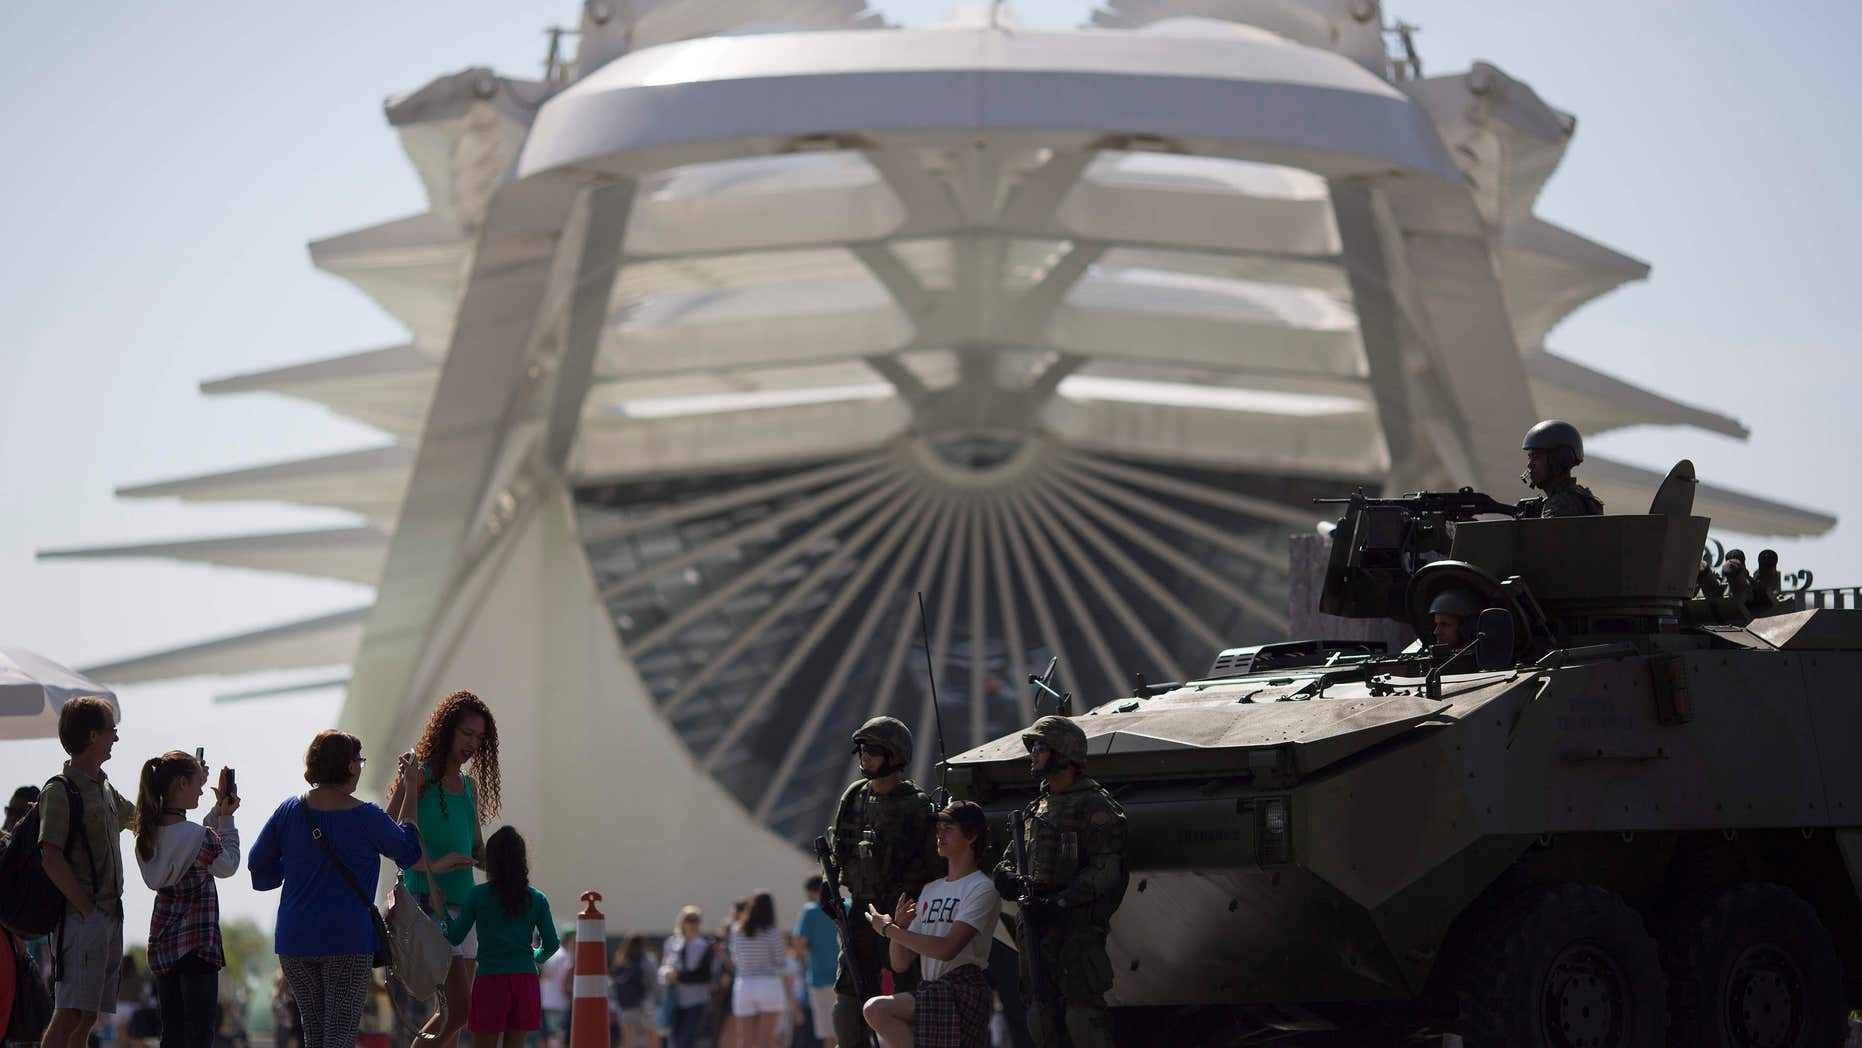 People take pictures with marines and their armored vehicle outside the Museum of Tomorrow in Rio de Janeiro, Brazil.